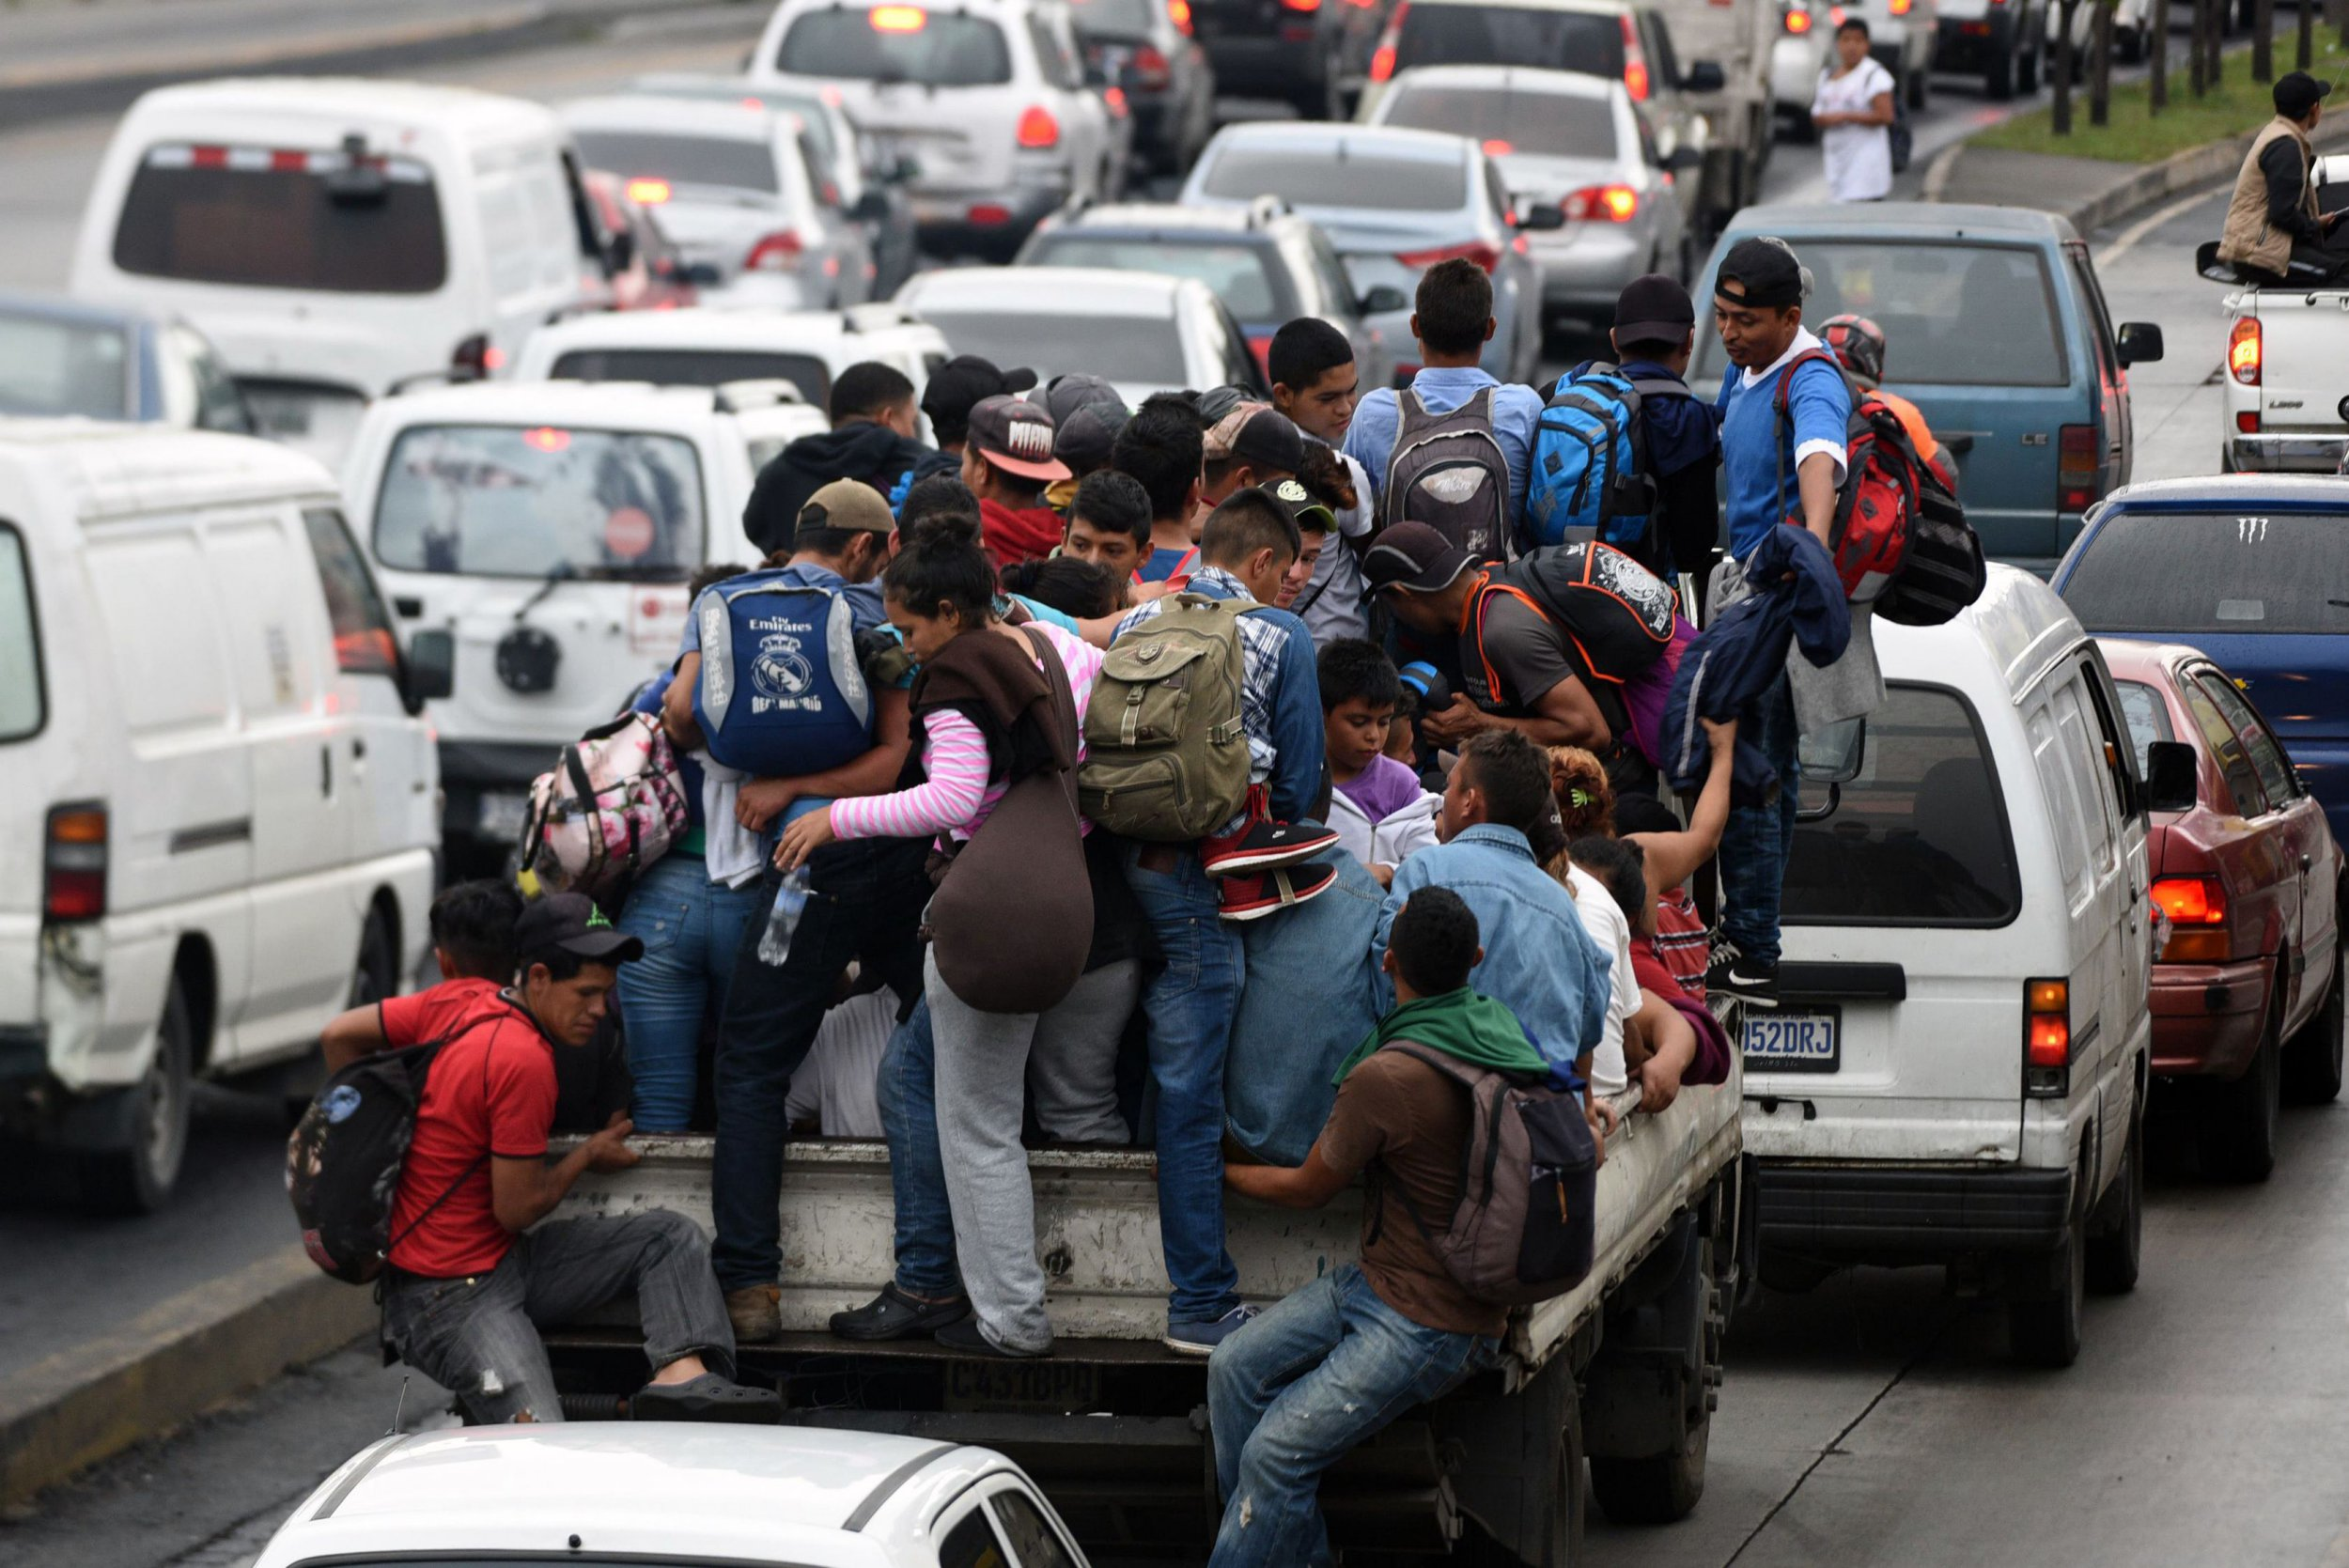 "Honduran migrants aboard vehicles head in a caravan to the United States, in Guatemala City, on October 18, 2018. - US President Donald Trump threatened Thursday to send the military to close its southern border if Mexico fails to stem the ""onslaught"" of migrants from Central America, in a series of tweets that blamed Democrats ahead of the midterm elections. (Photo by ORLANDO SIERRA / AFP)ORLANDO SIERRA/AFP/Getty Images"